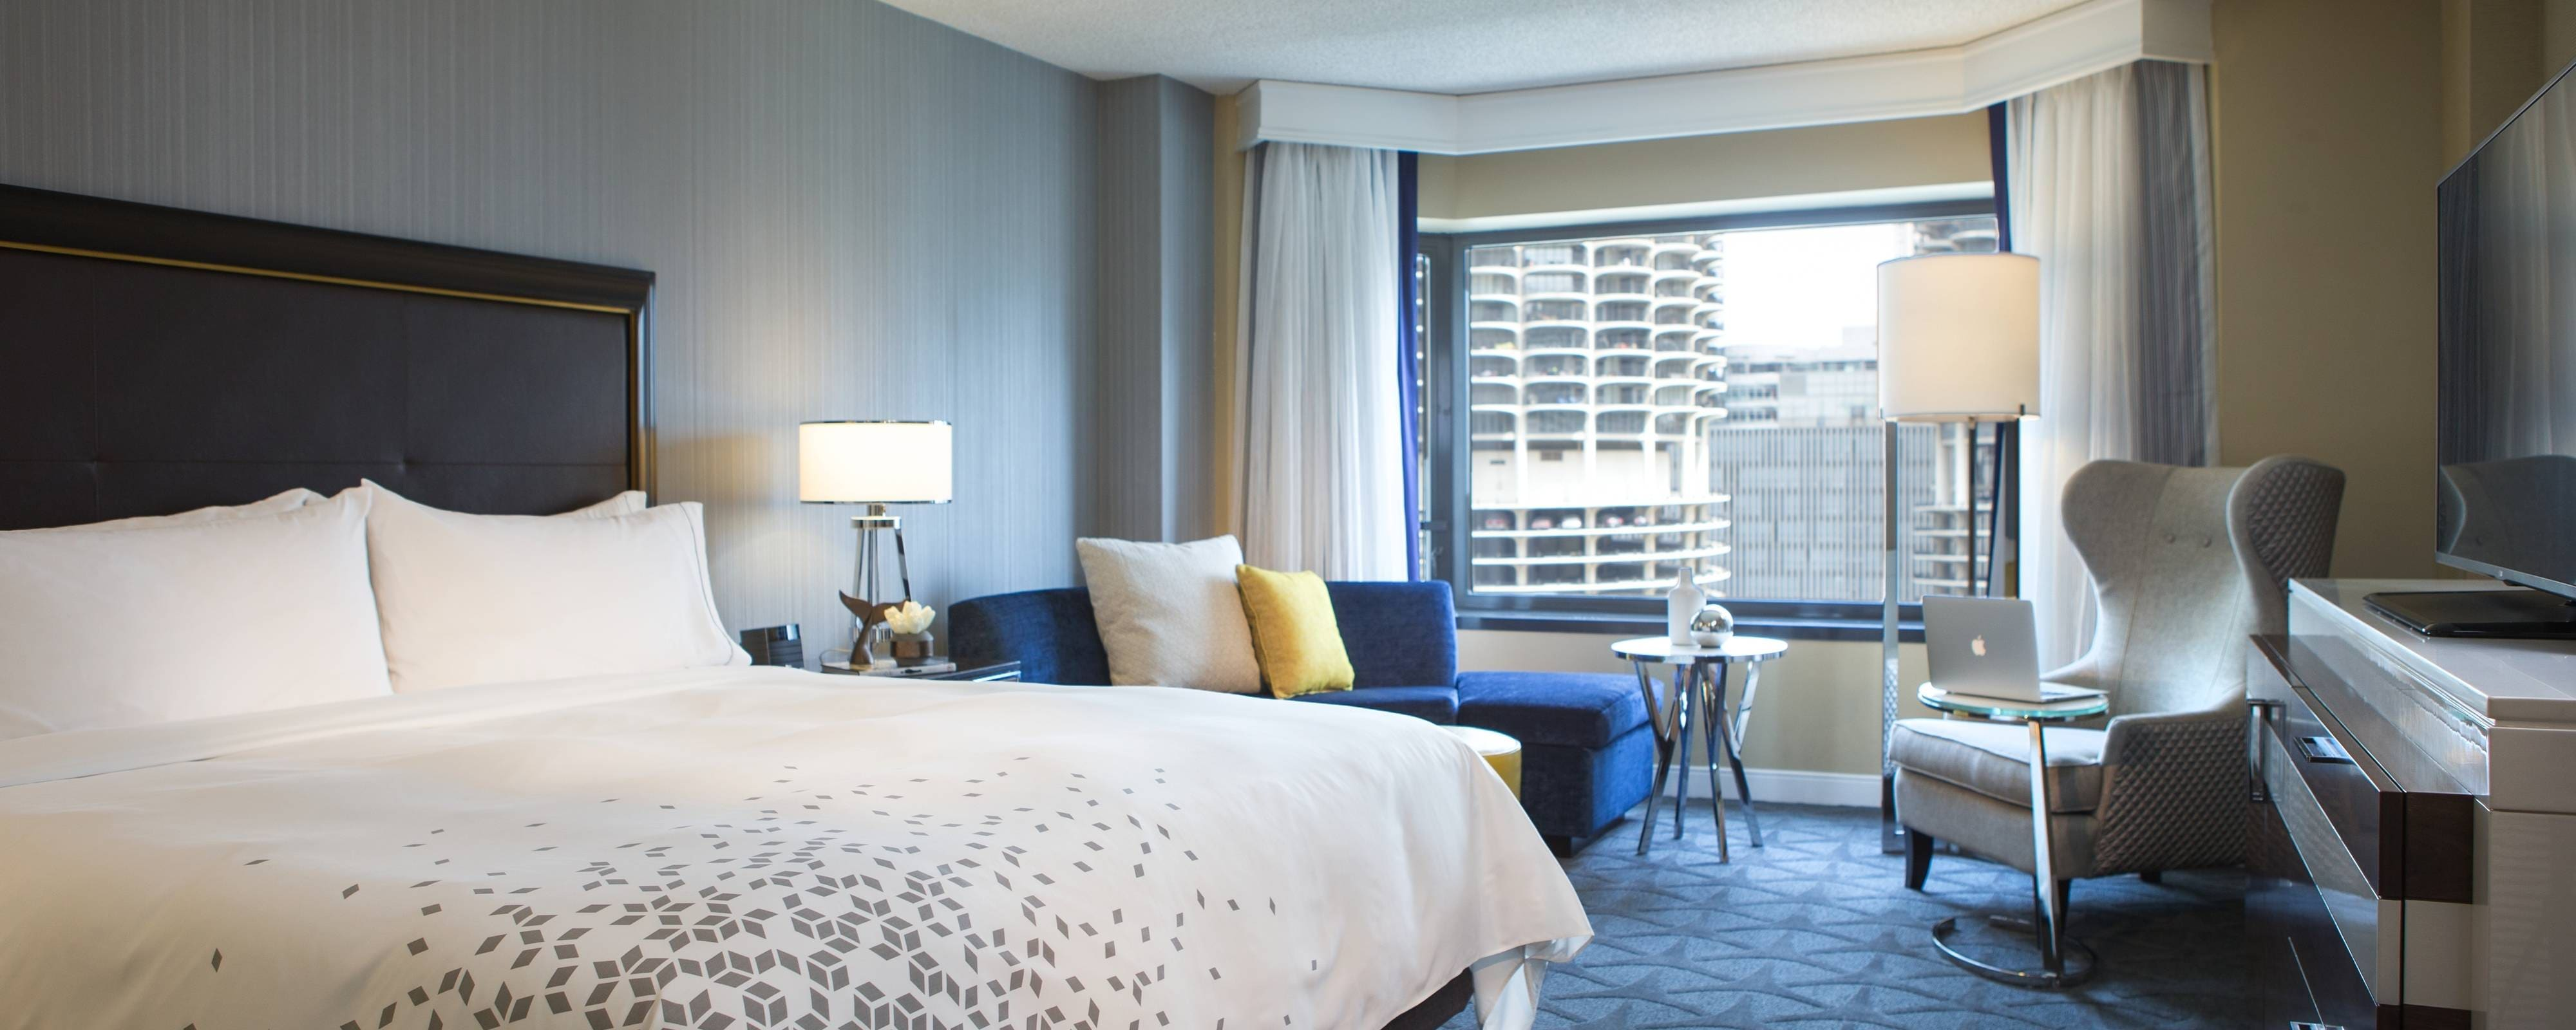 Chicago accommodations - river view